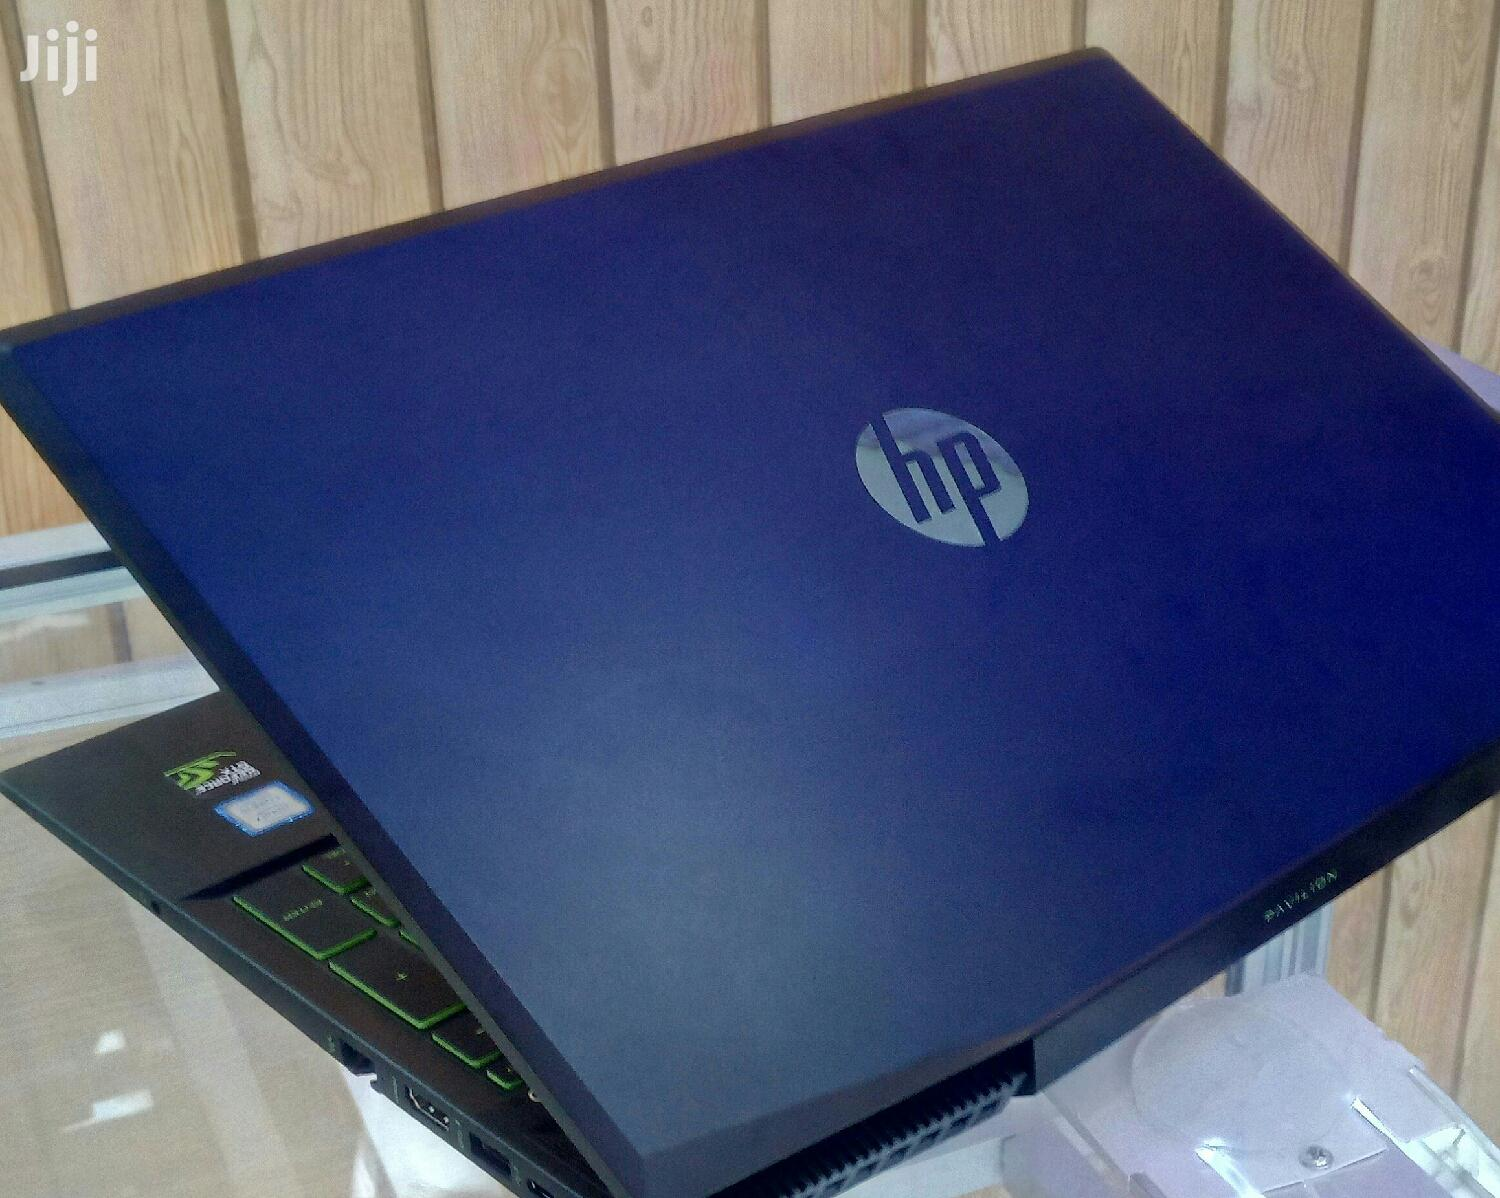 New Laptop HP Pavilion 15 8GB Intel Core i5 SSHD (Hybrid) 1T | Laptops & Computers for sale in Nairobi Central, Nairobi, Kenya